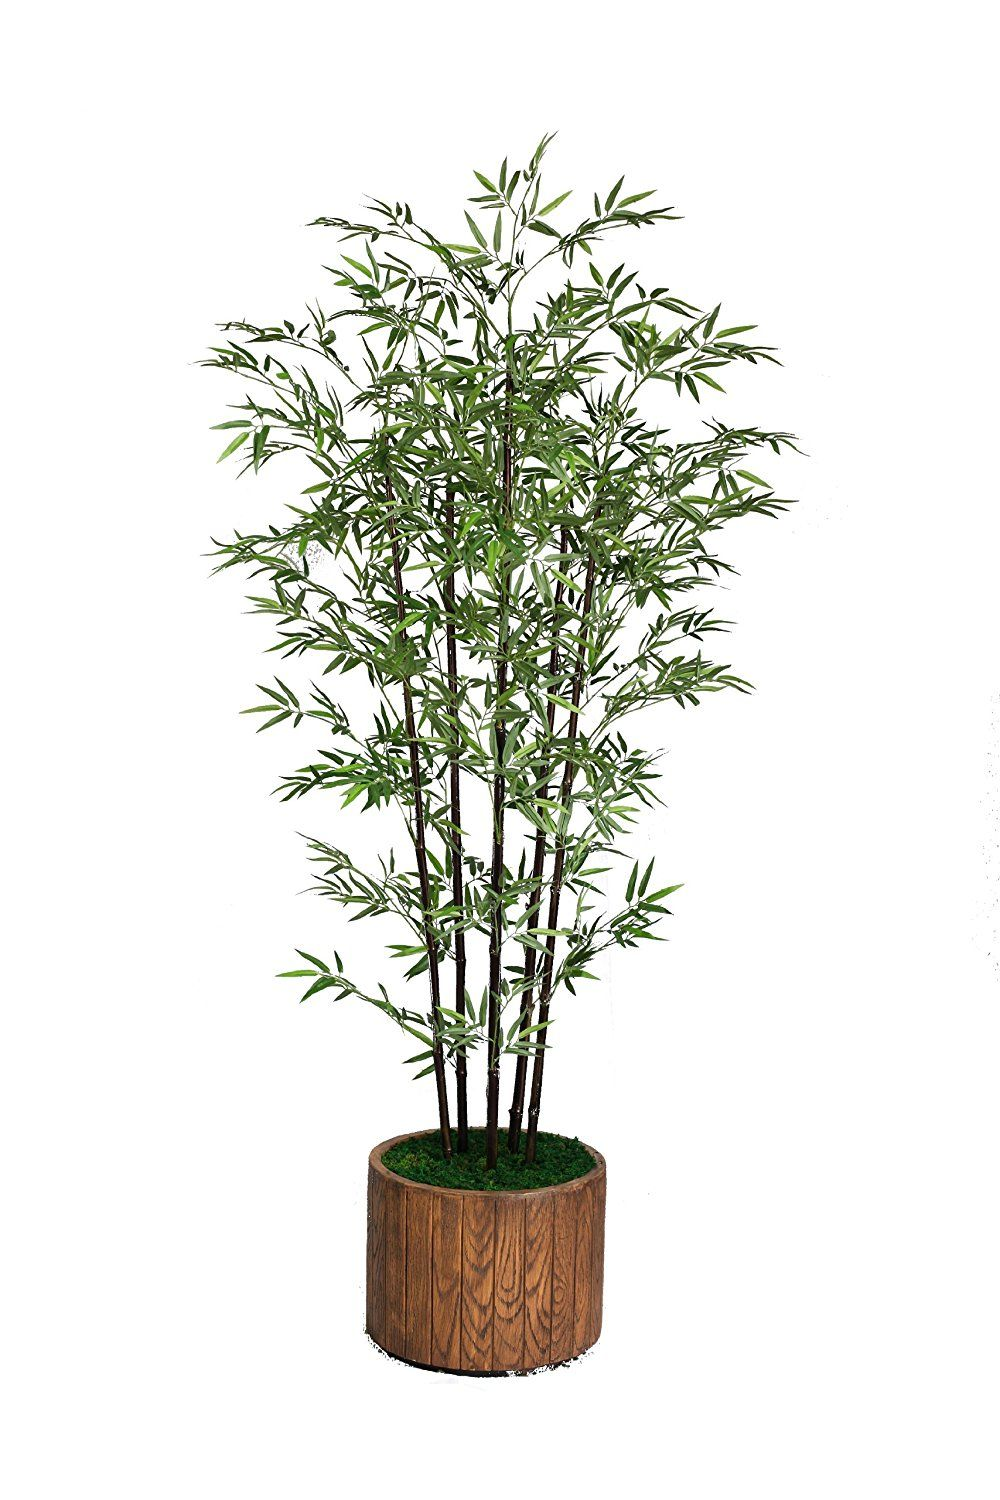 Laura Ashley 77 Inch Tall Banana Tree with Real Touch Leaves in 16 Inch Fiberstone Planter *** Learn more by visiting the image link.